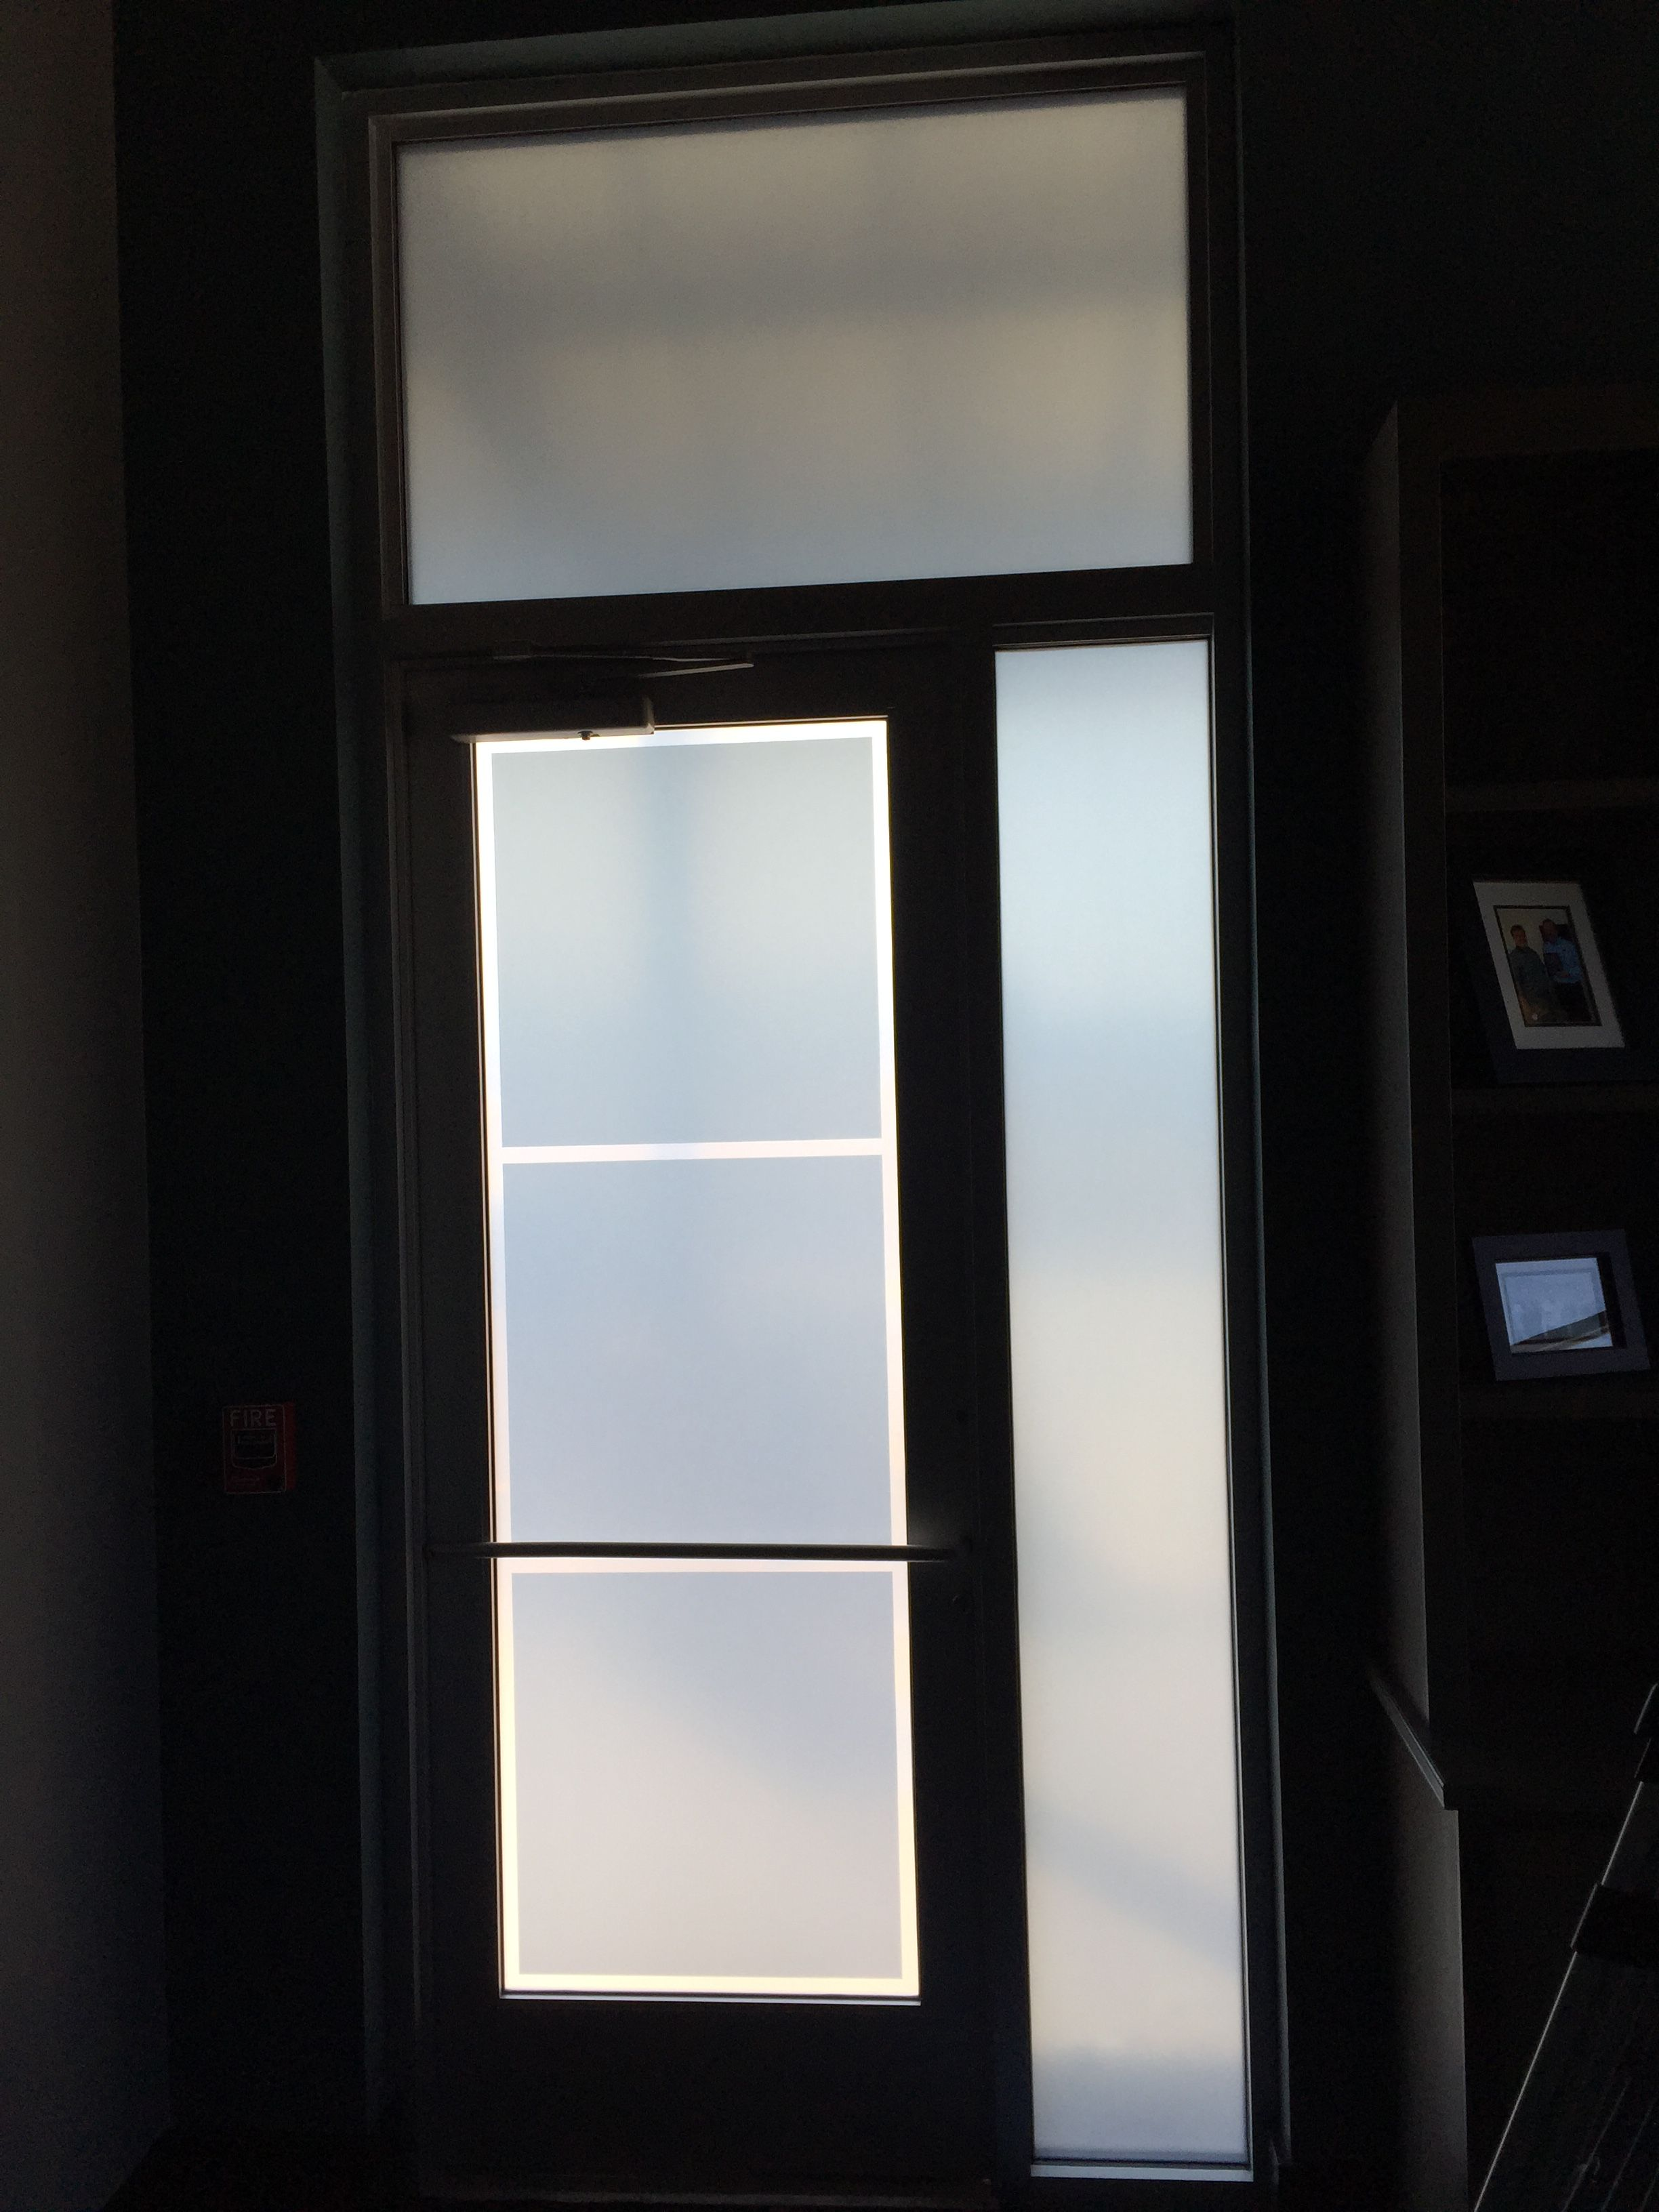 solar shade window tint inside of office door covered with grey and white frost window film https pin by solar shades co on window tinting pinterest